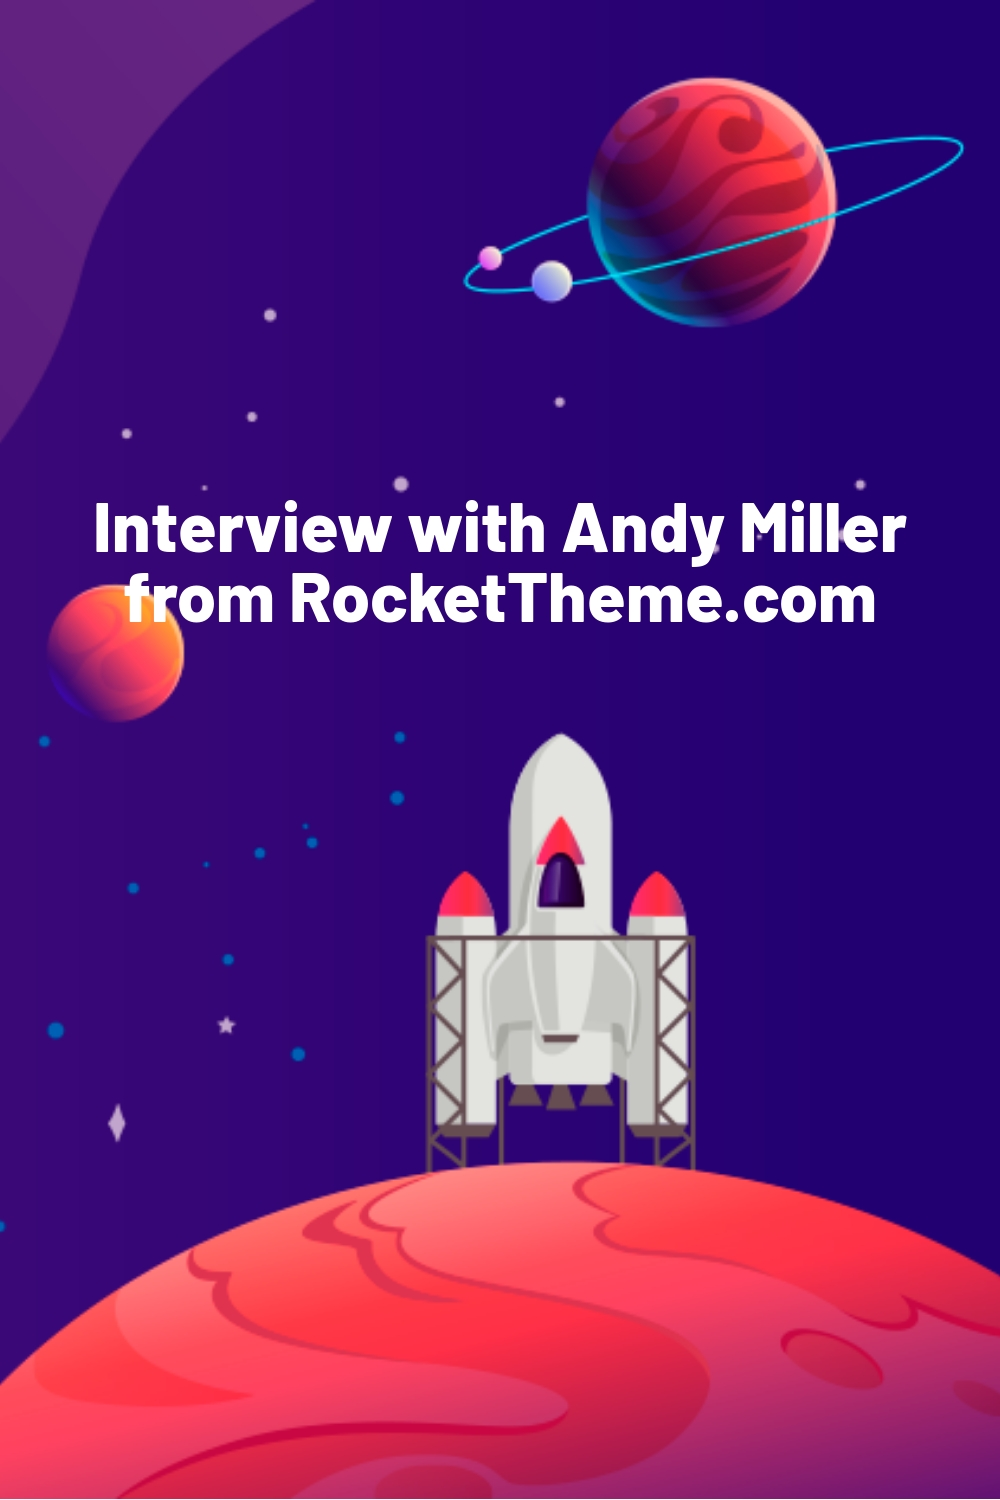 Interview with Andy Miller from RocketTheme.com